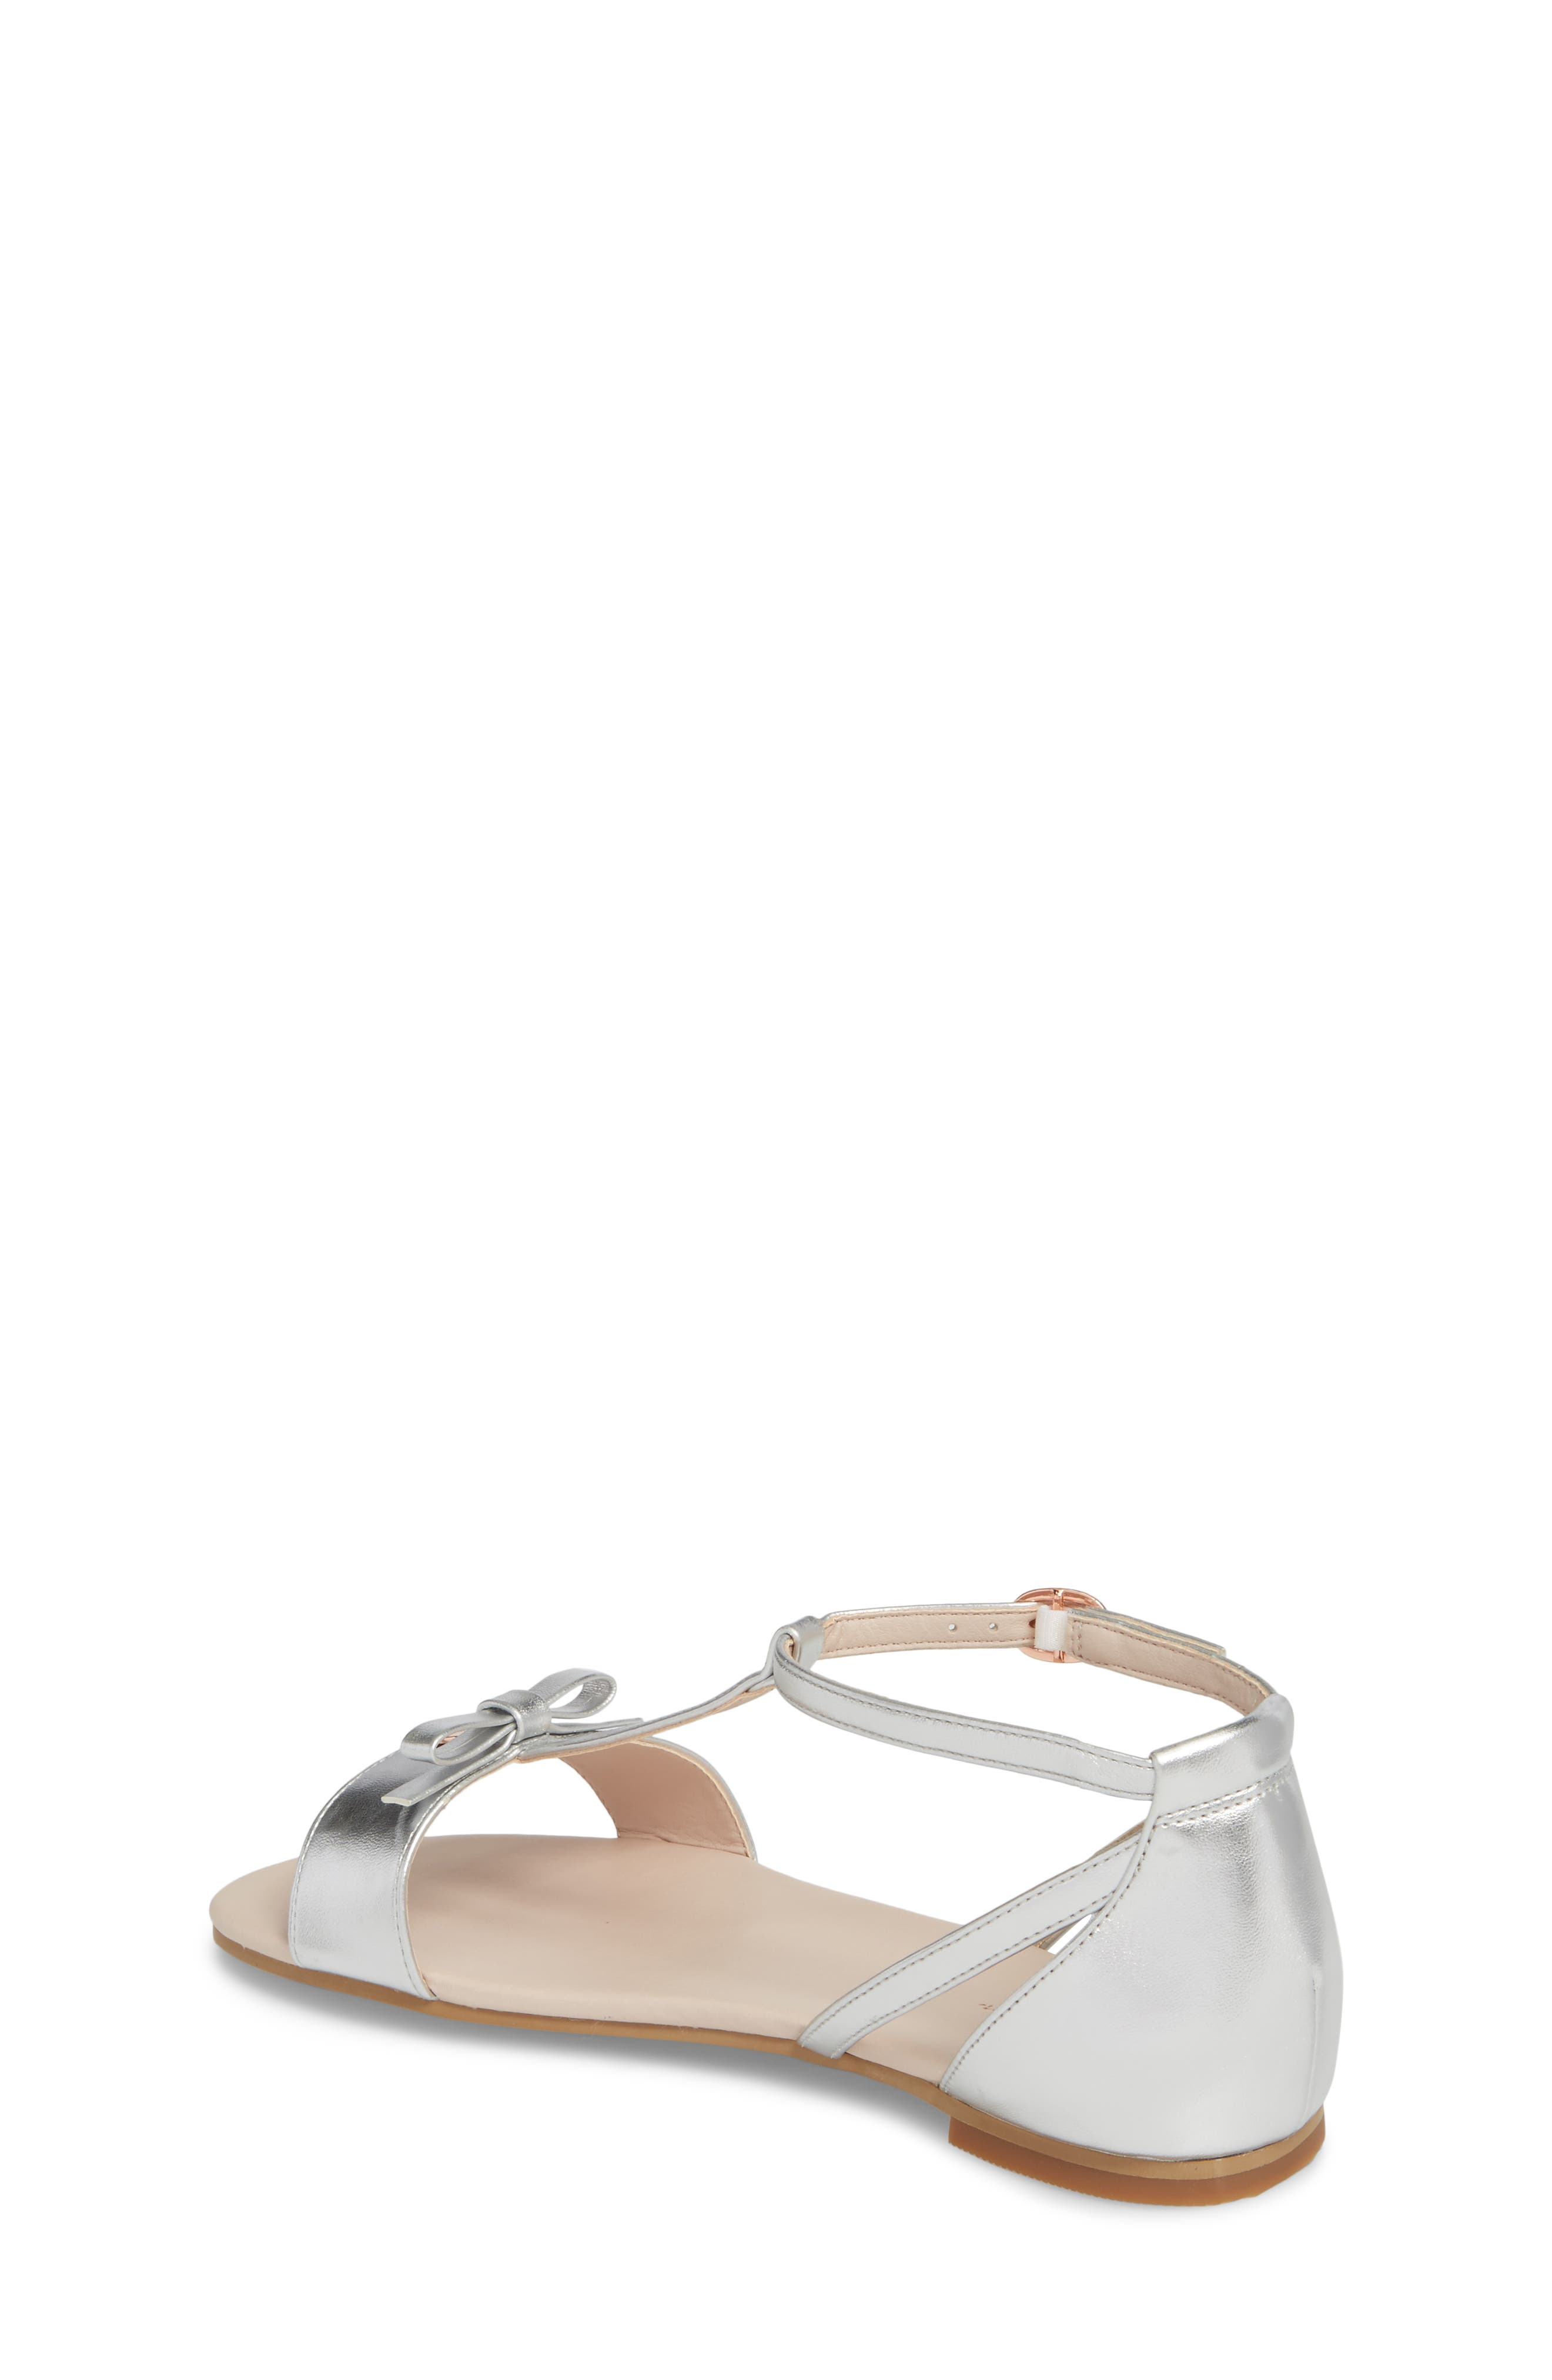 Valentina Metallic T-Strap Sandal,                             Alternate thumbnail 2, color,                             Silver Faux Leather